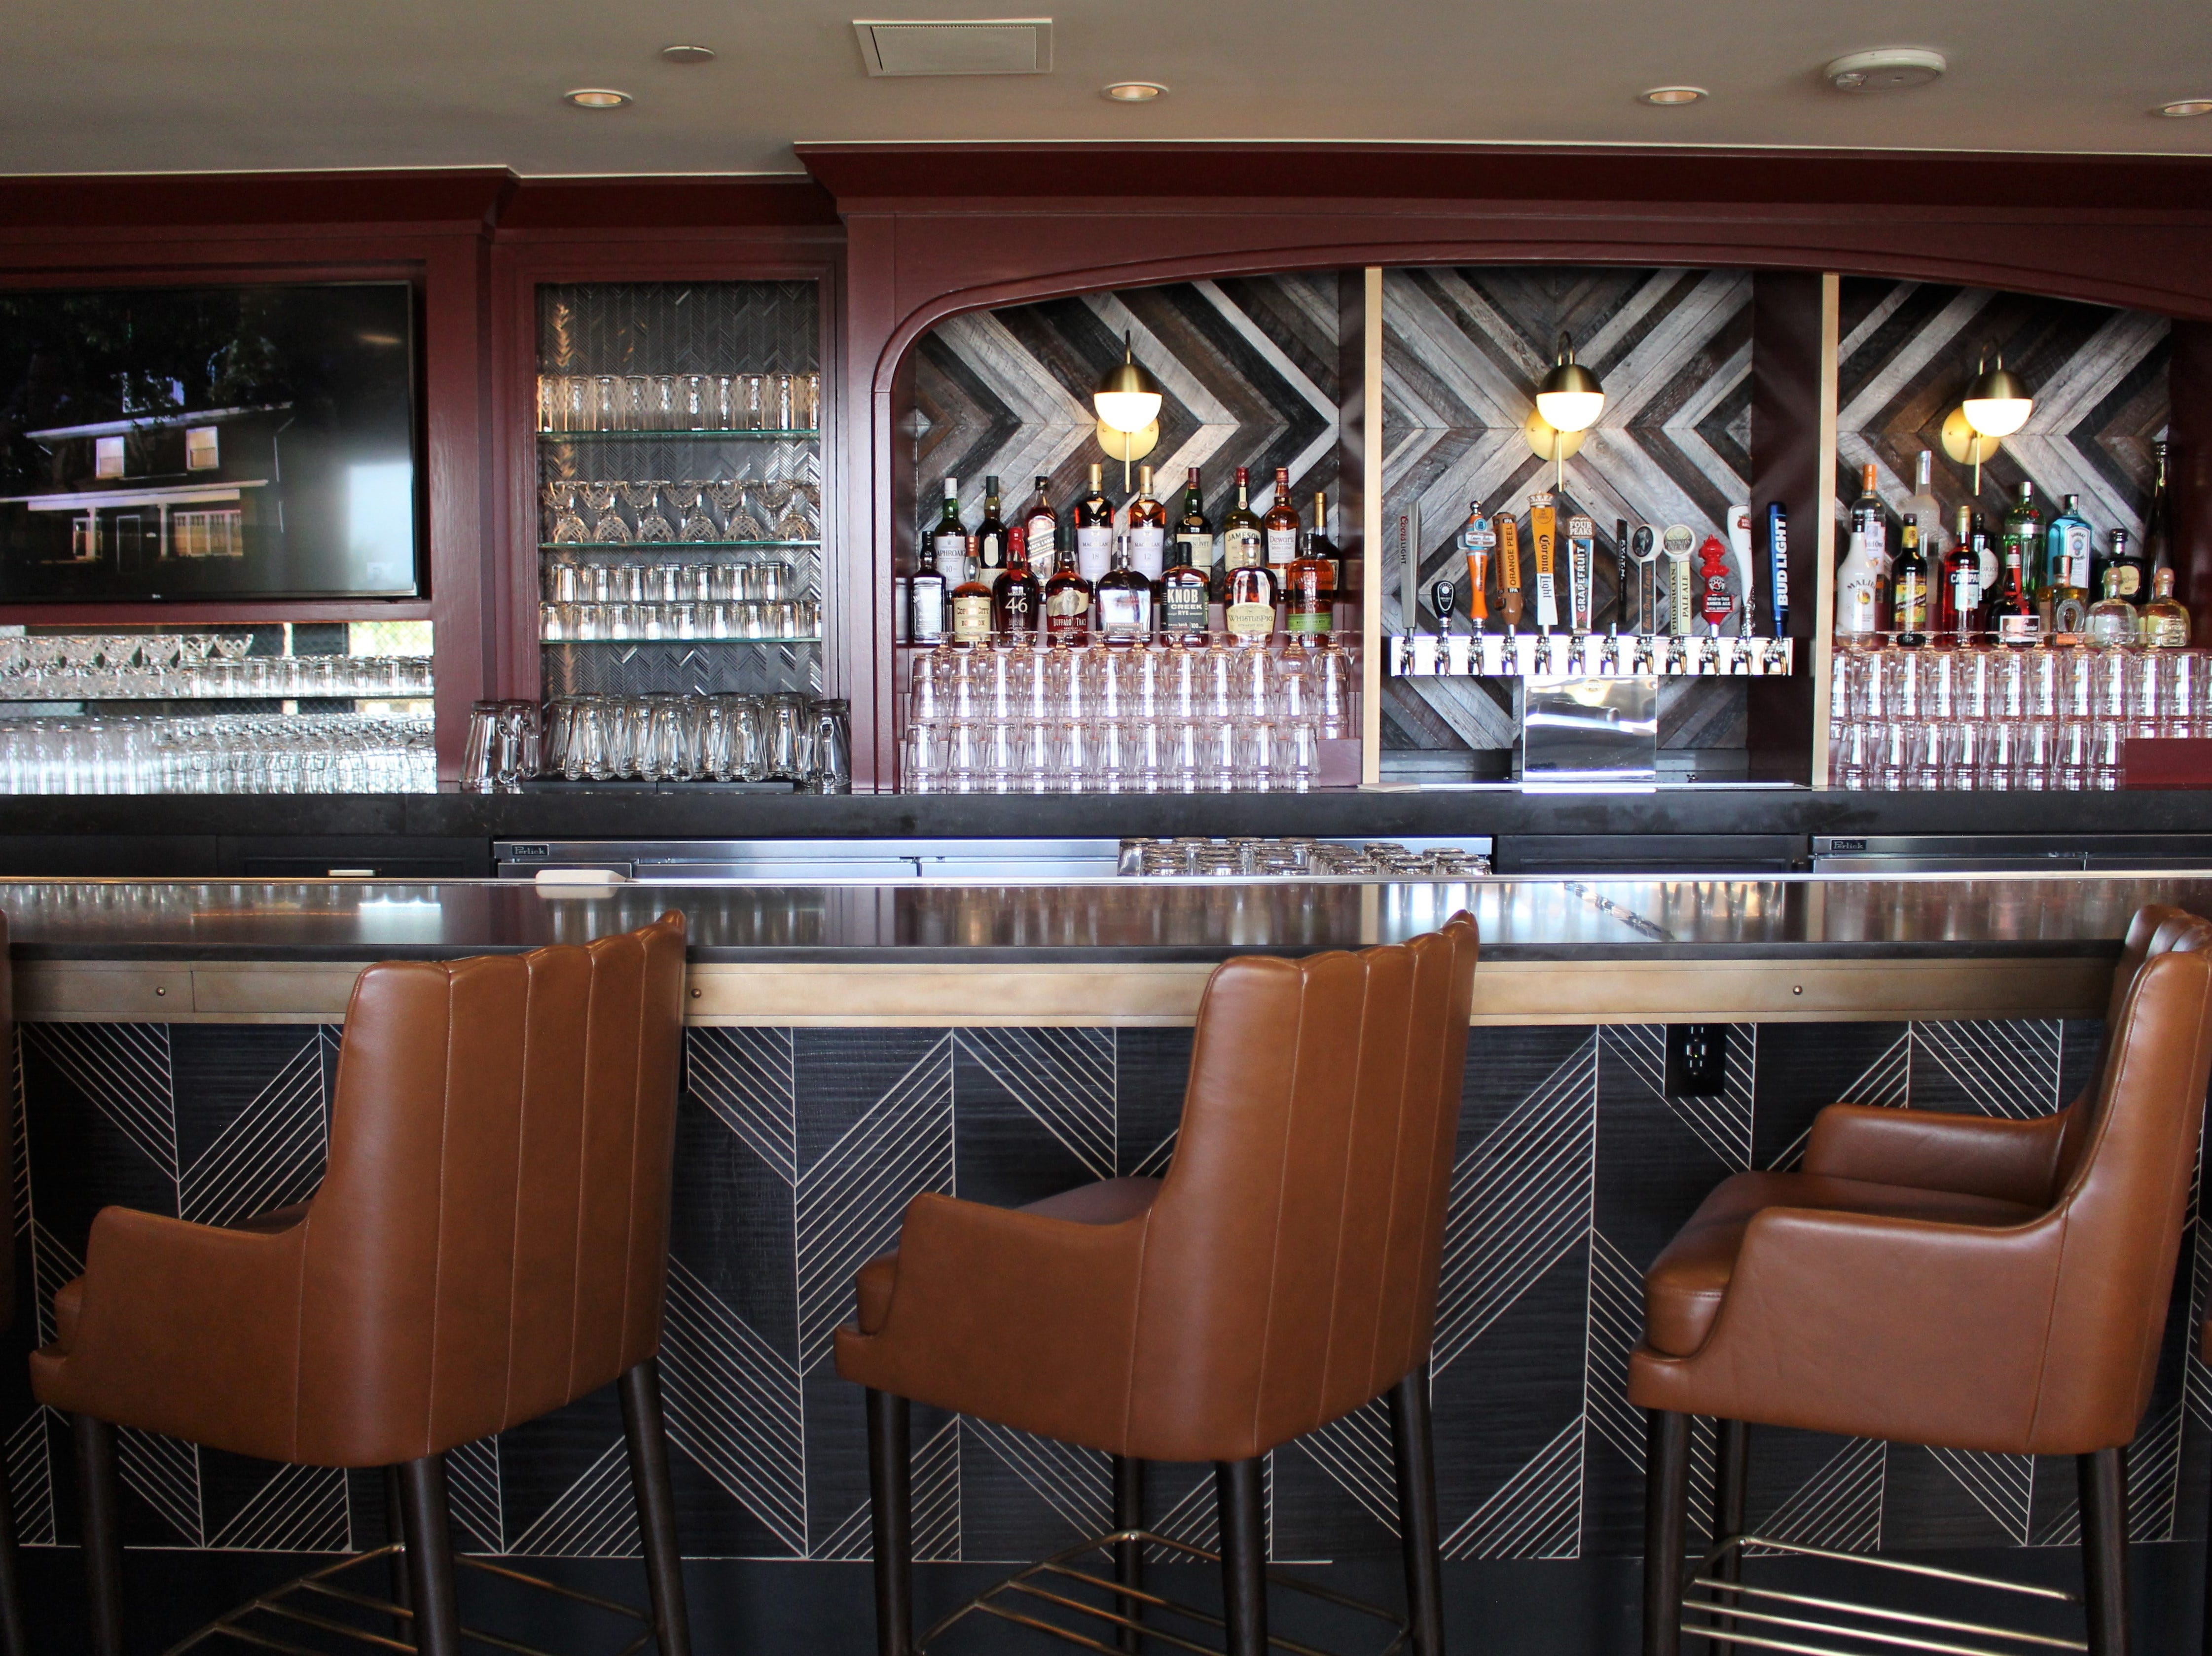 The new bar at The Phoenician Tavern, a comfortable lunch and dinner restaurant now open at the Phoenician resort.